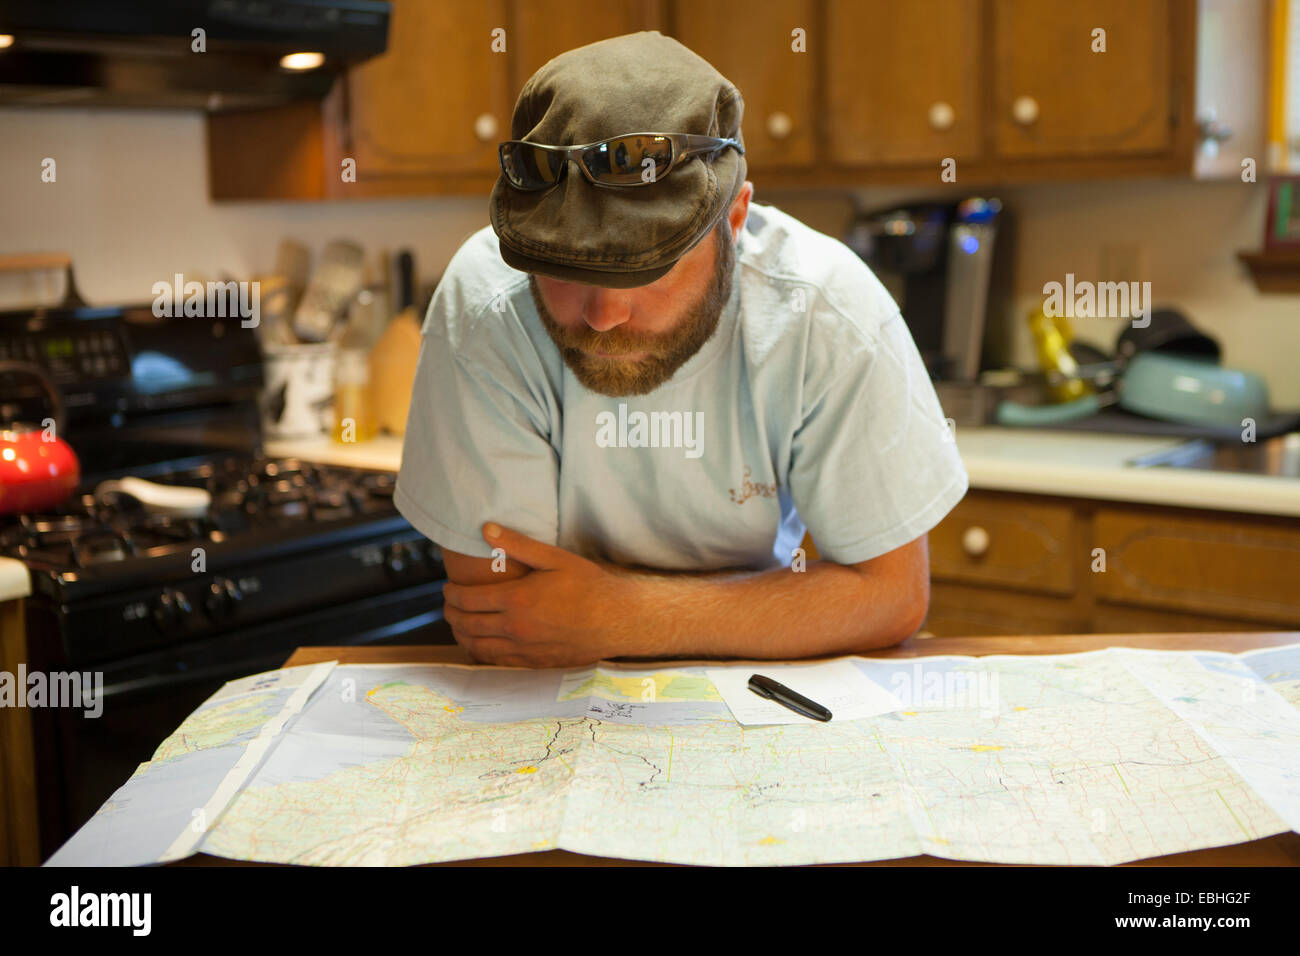 Man studying map of USA at kitchen table - Stock Image